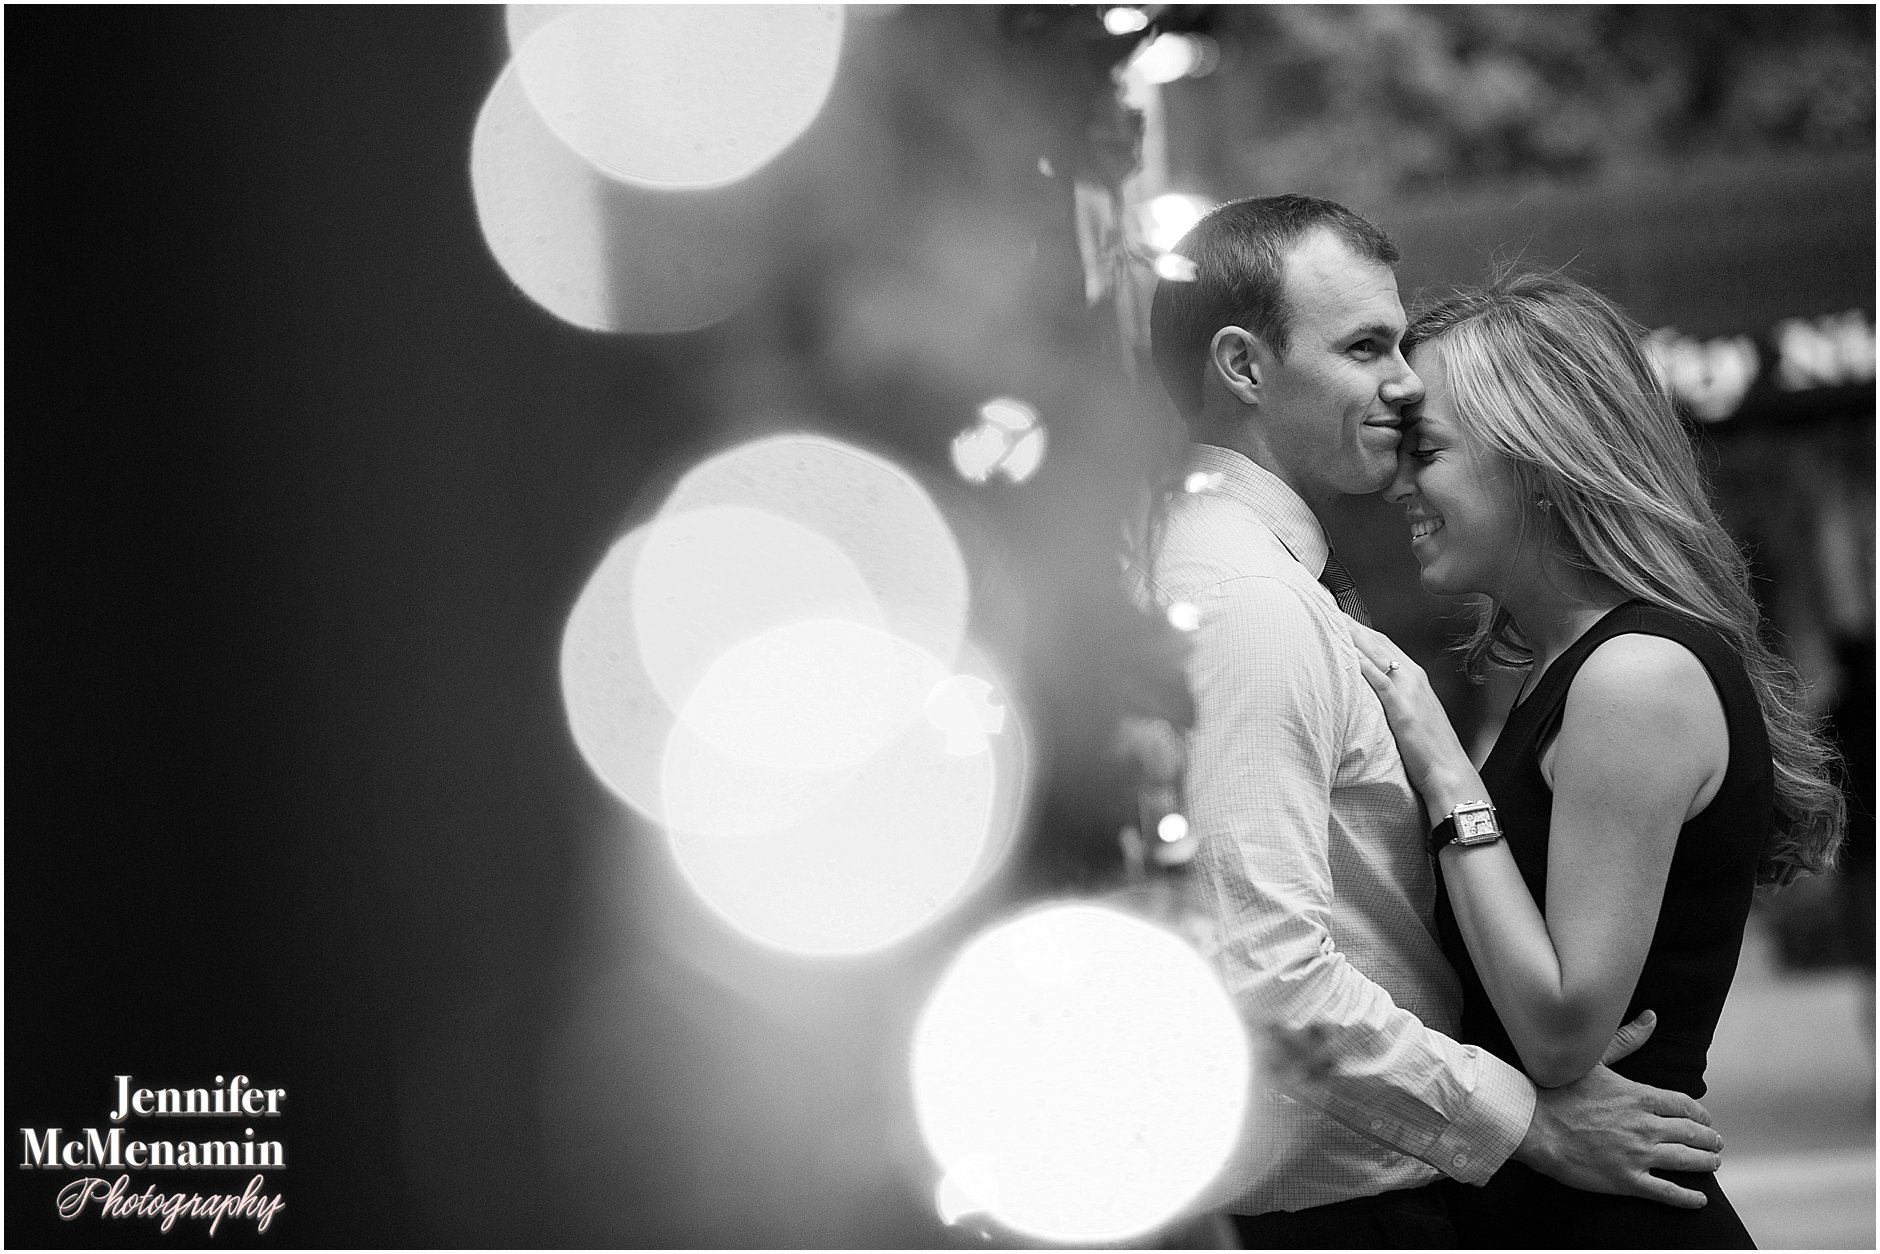 015-jennifer-mcmenamin-photography-nyc-engagement-photos_0013